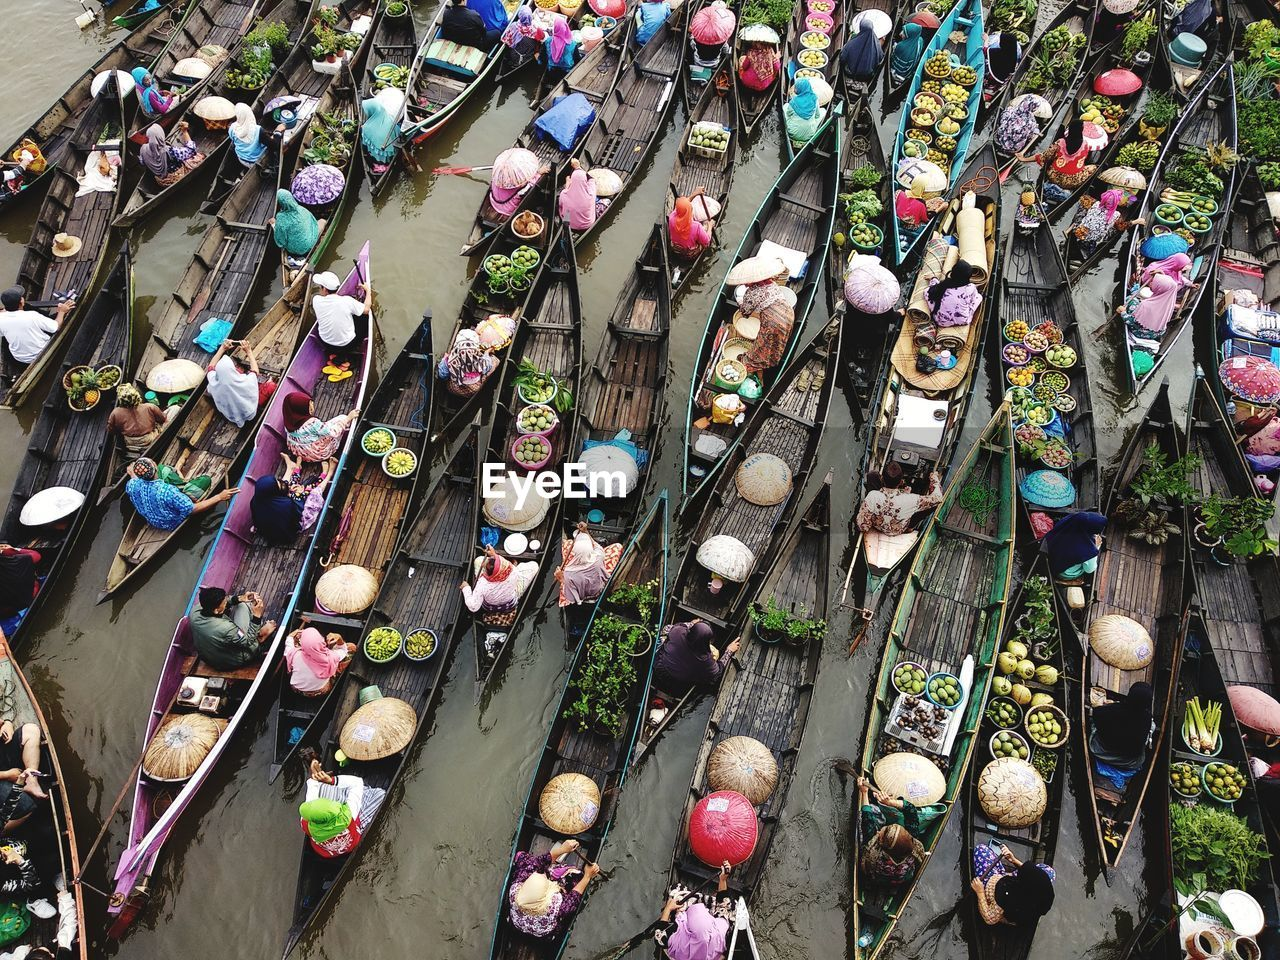 high angle view, day, city, transportation, street, mode of transportation, outdoors, group of people, land vehicle, large group of people, large group of objects, architecture, nature, in a row, side by side, variation, abundance